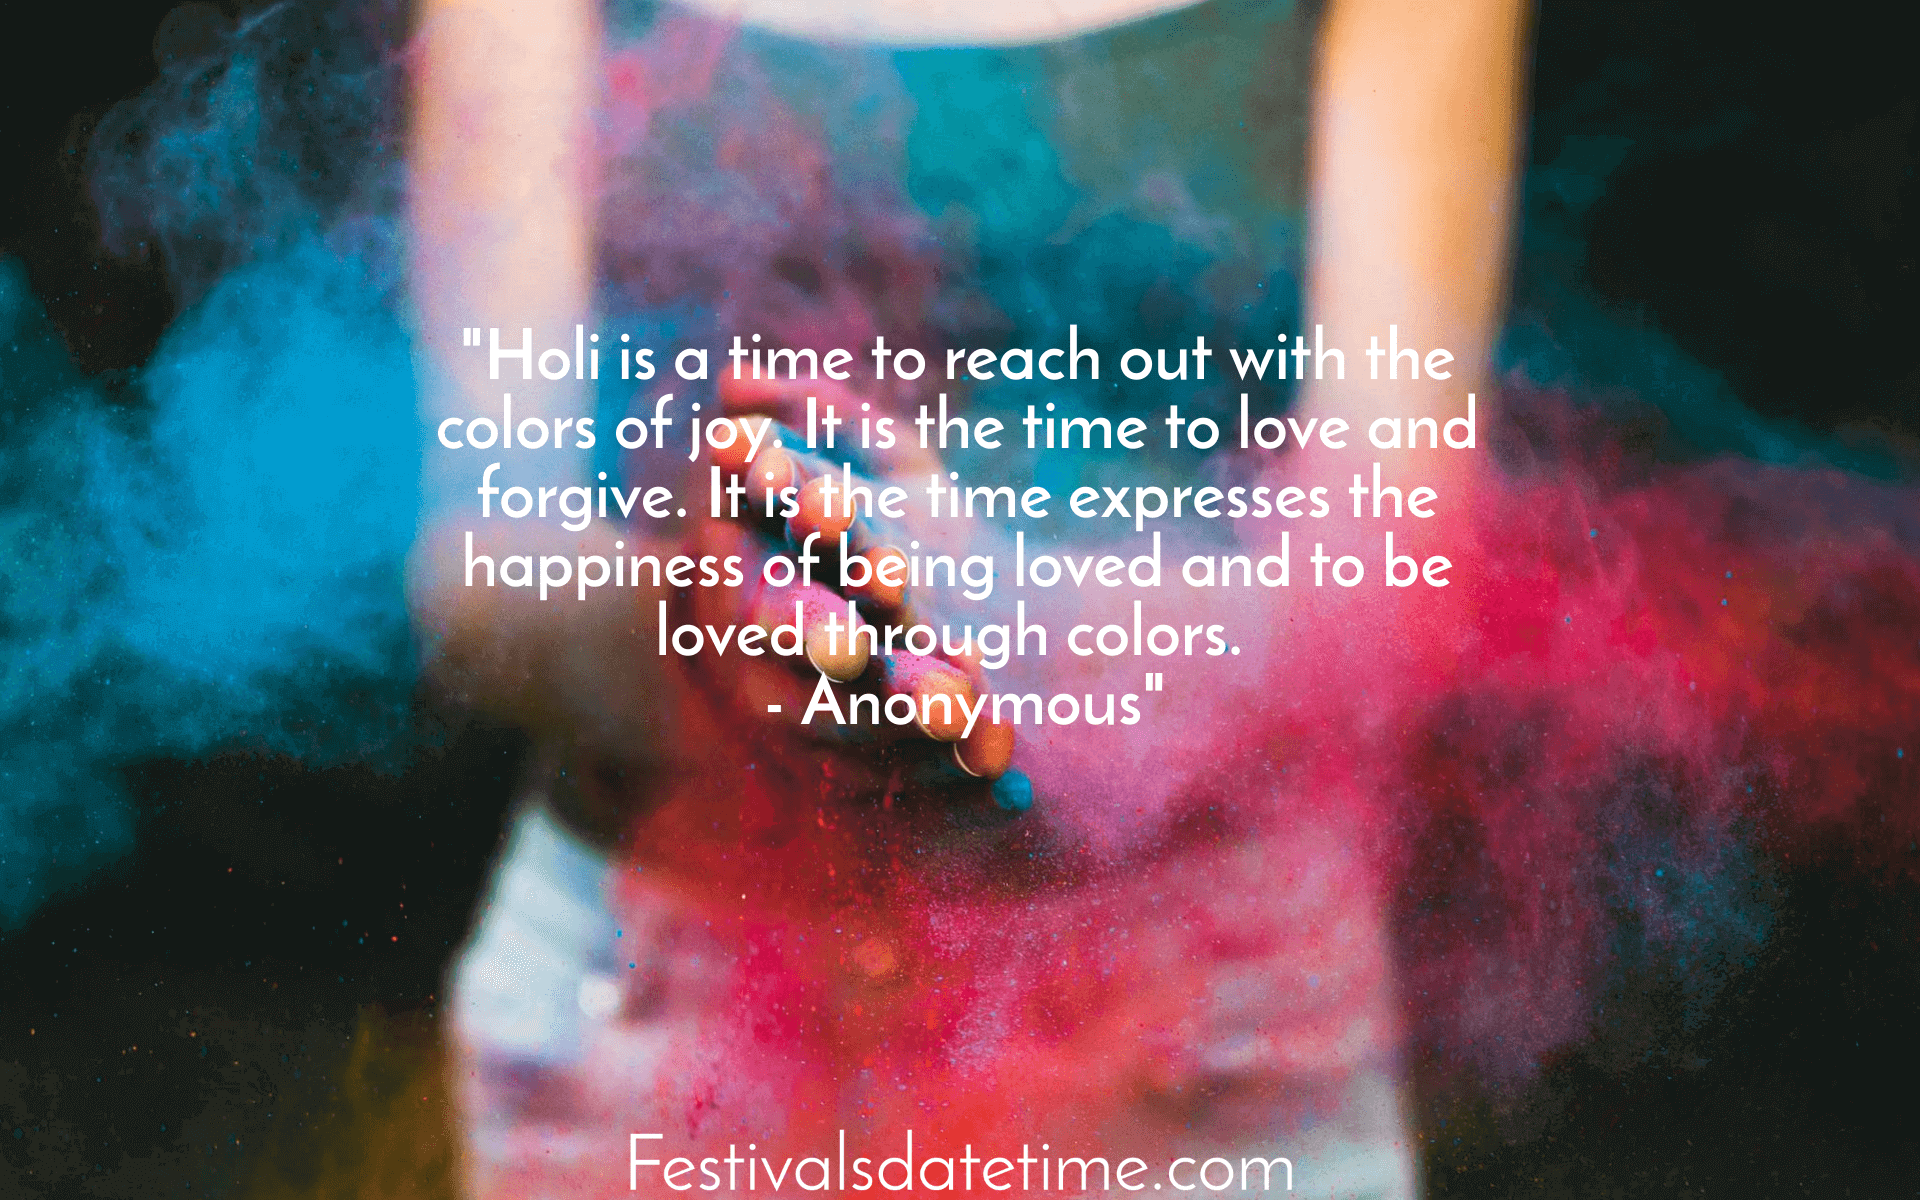 holi_images_and_quotations